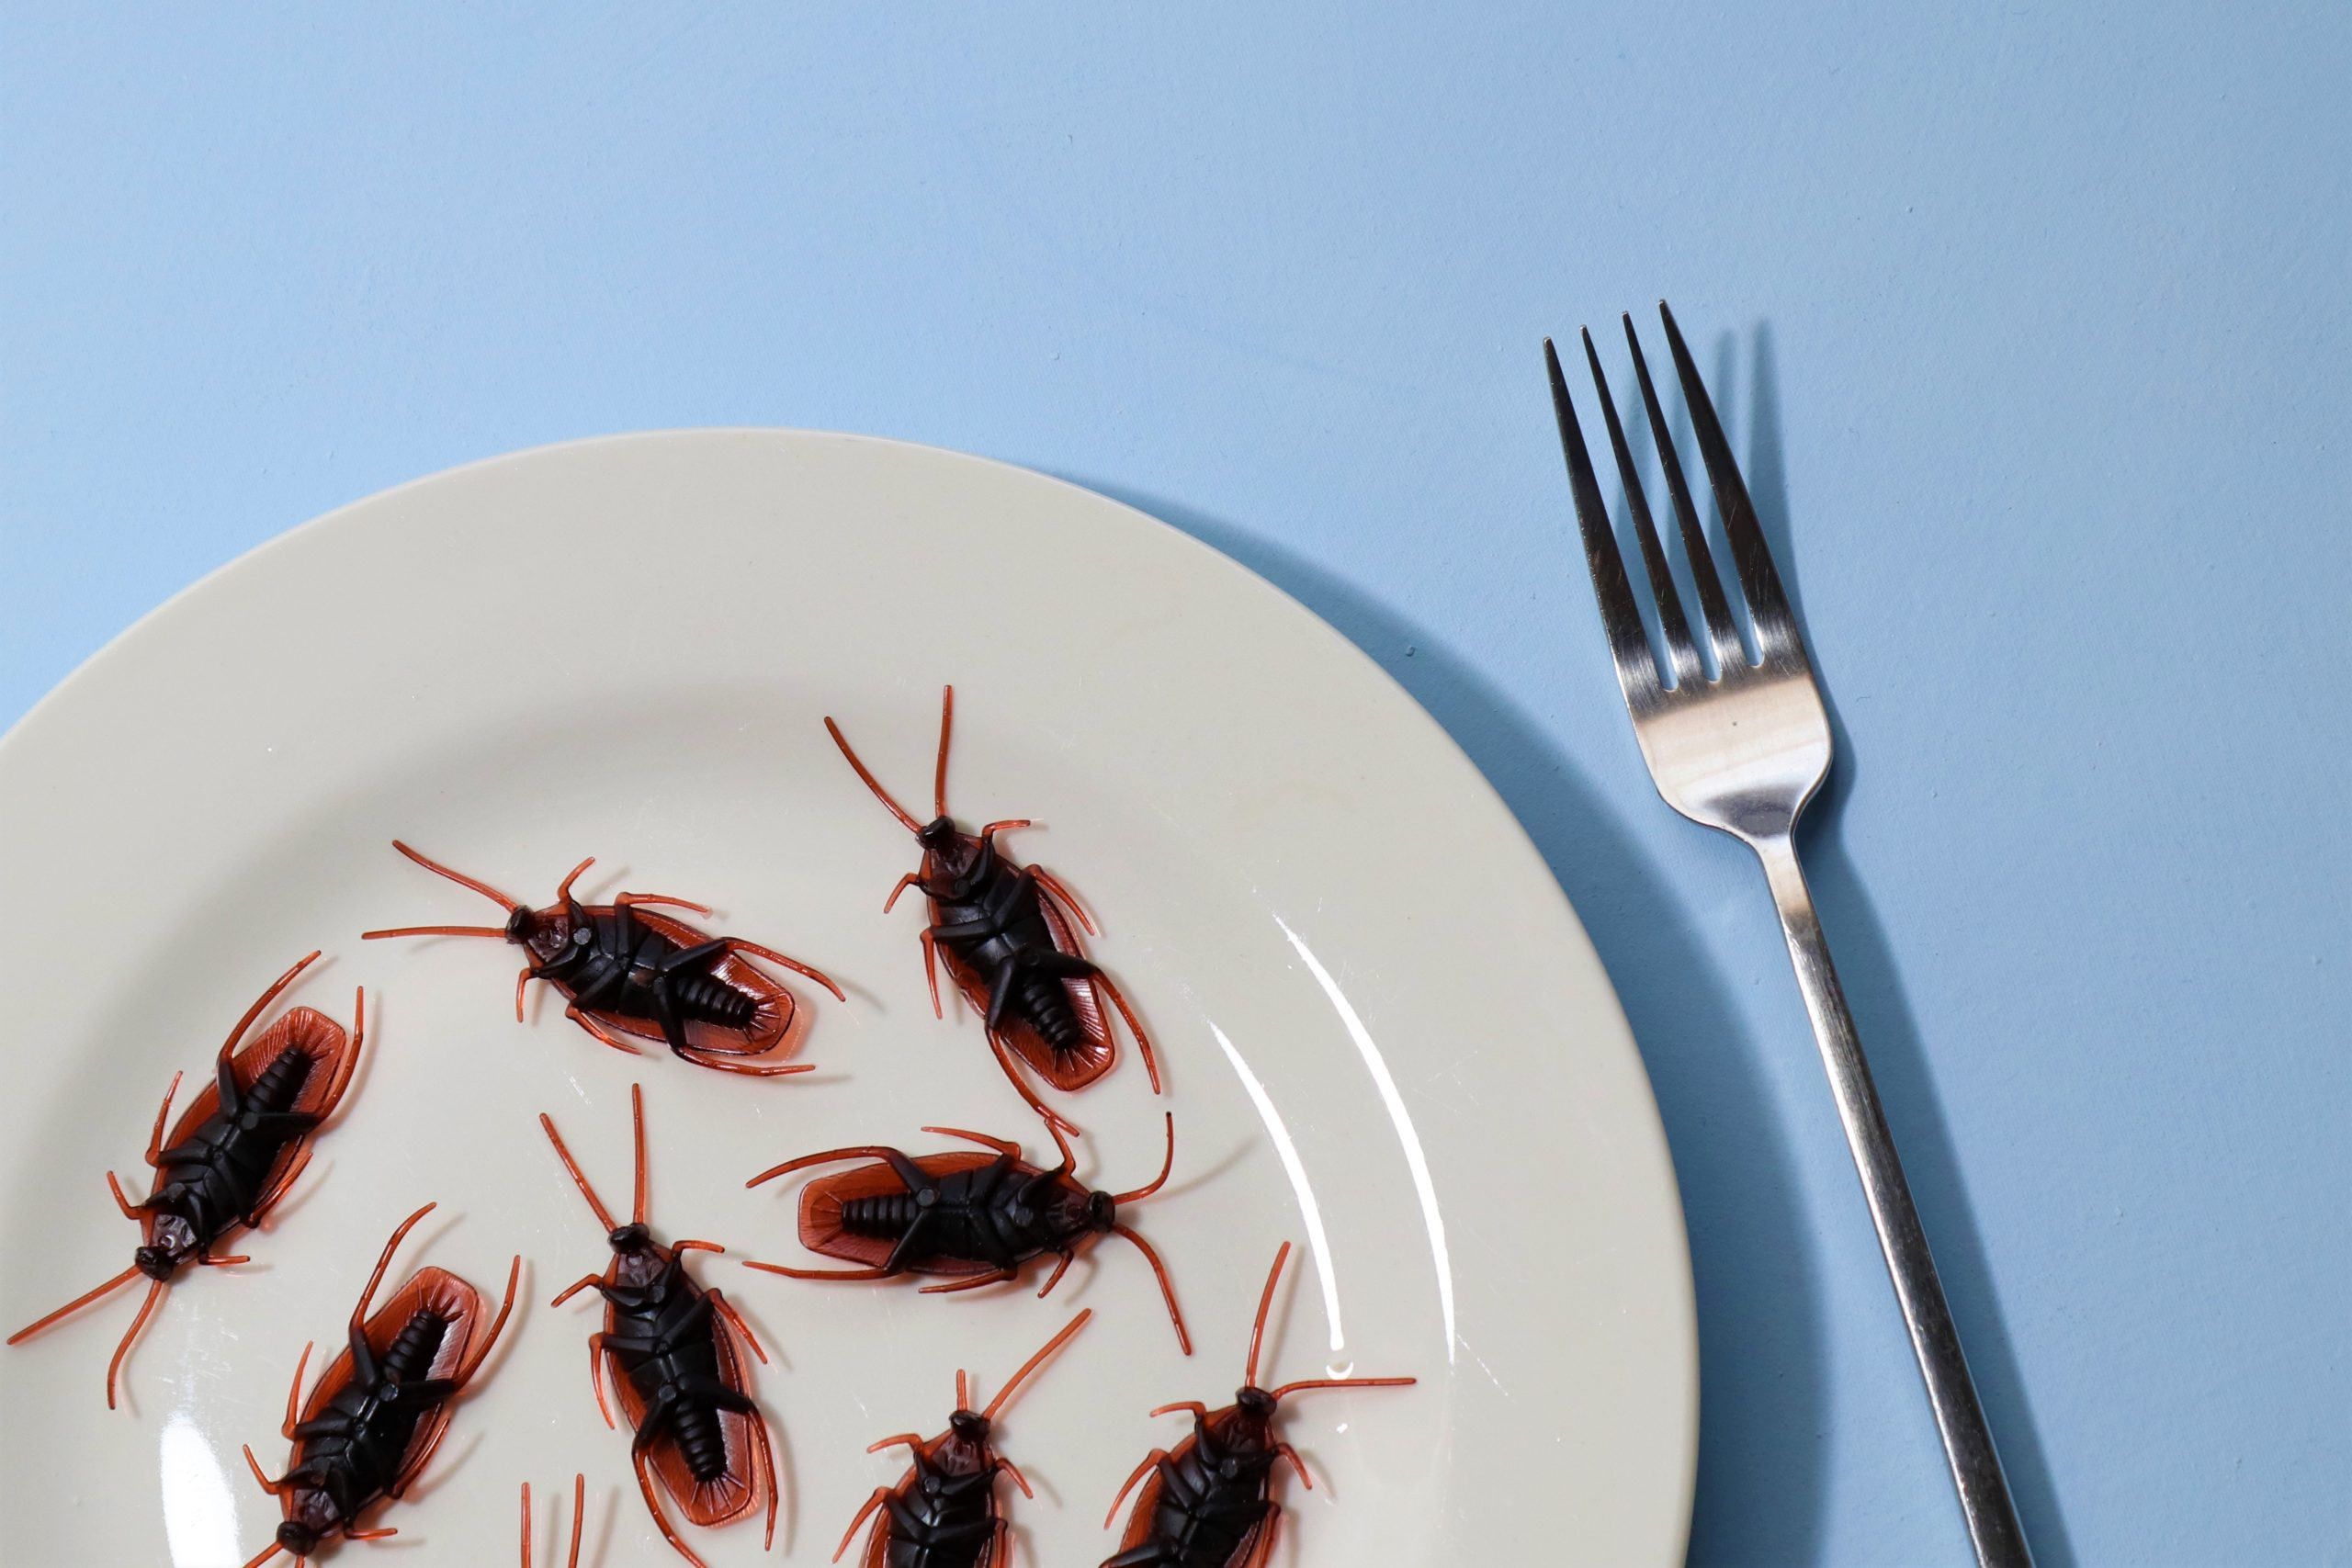 Eight cockroaches on a white plate with a fork beside them